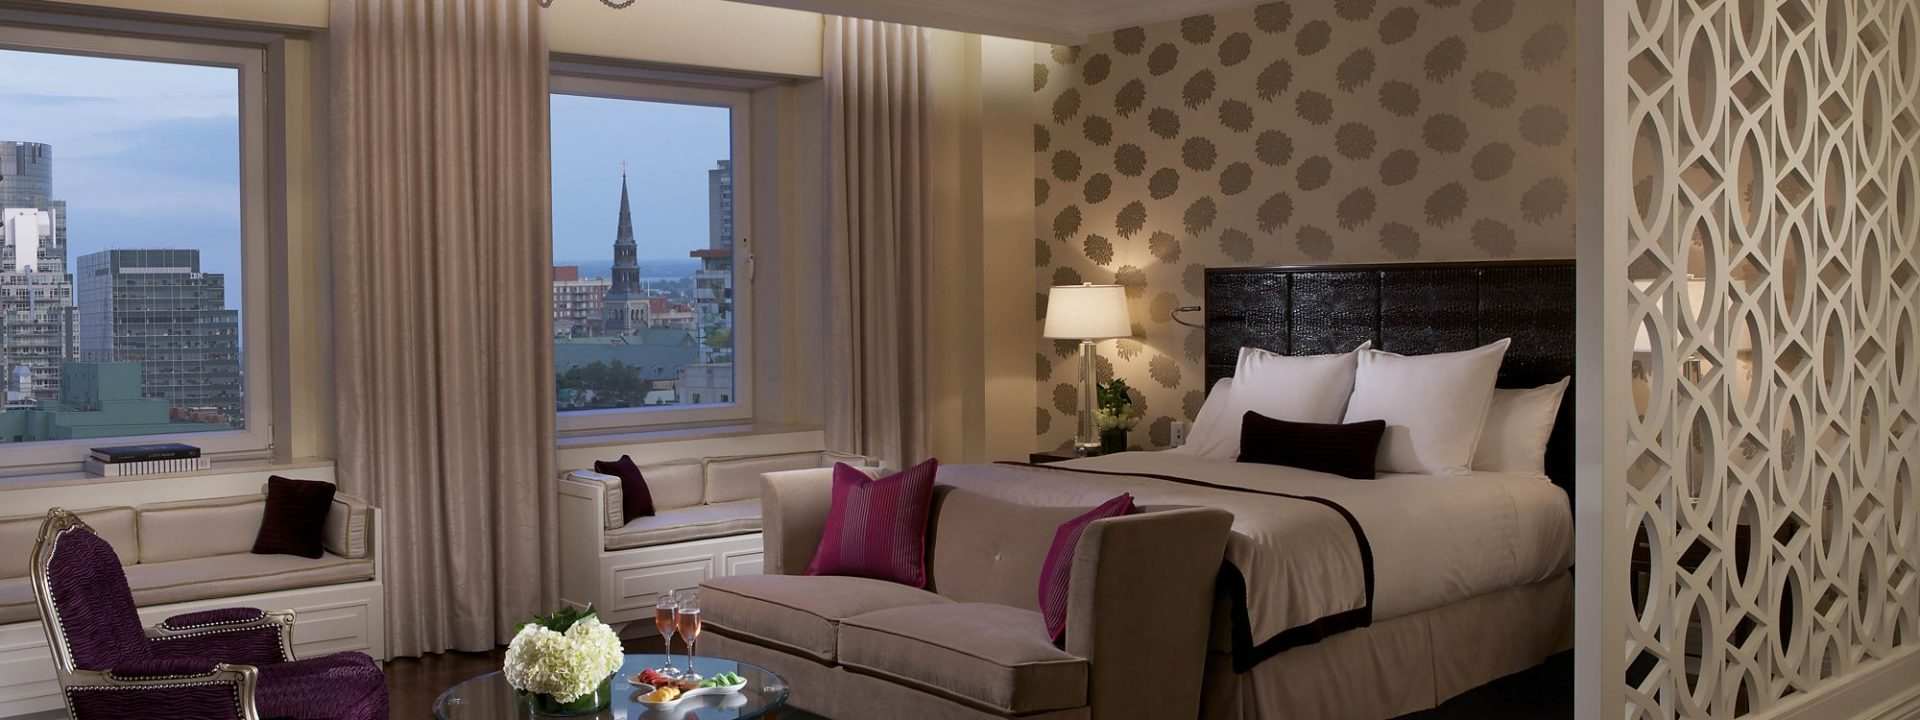 Ritz-Carlton Montreal's C$200 million reno is worth the hefty price tag